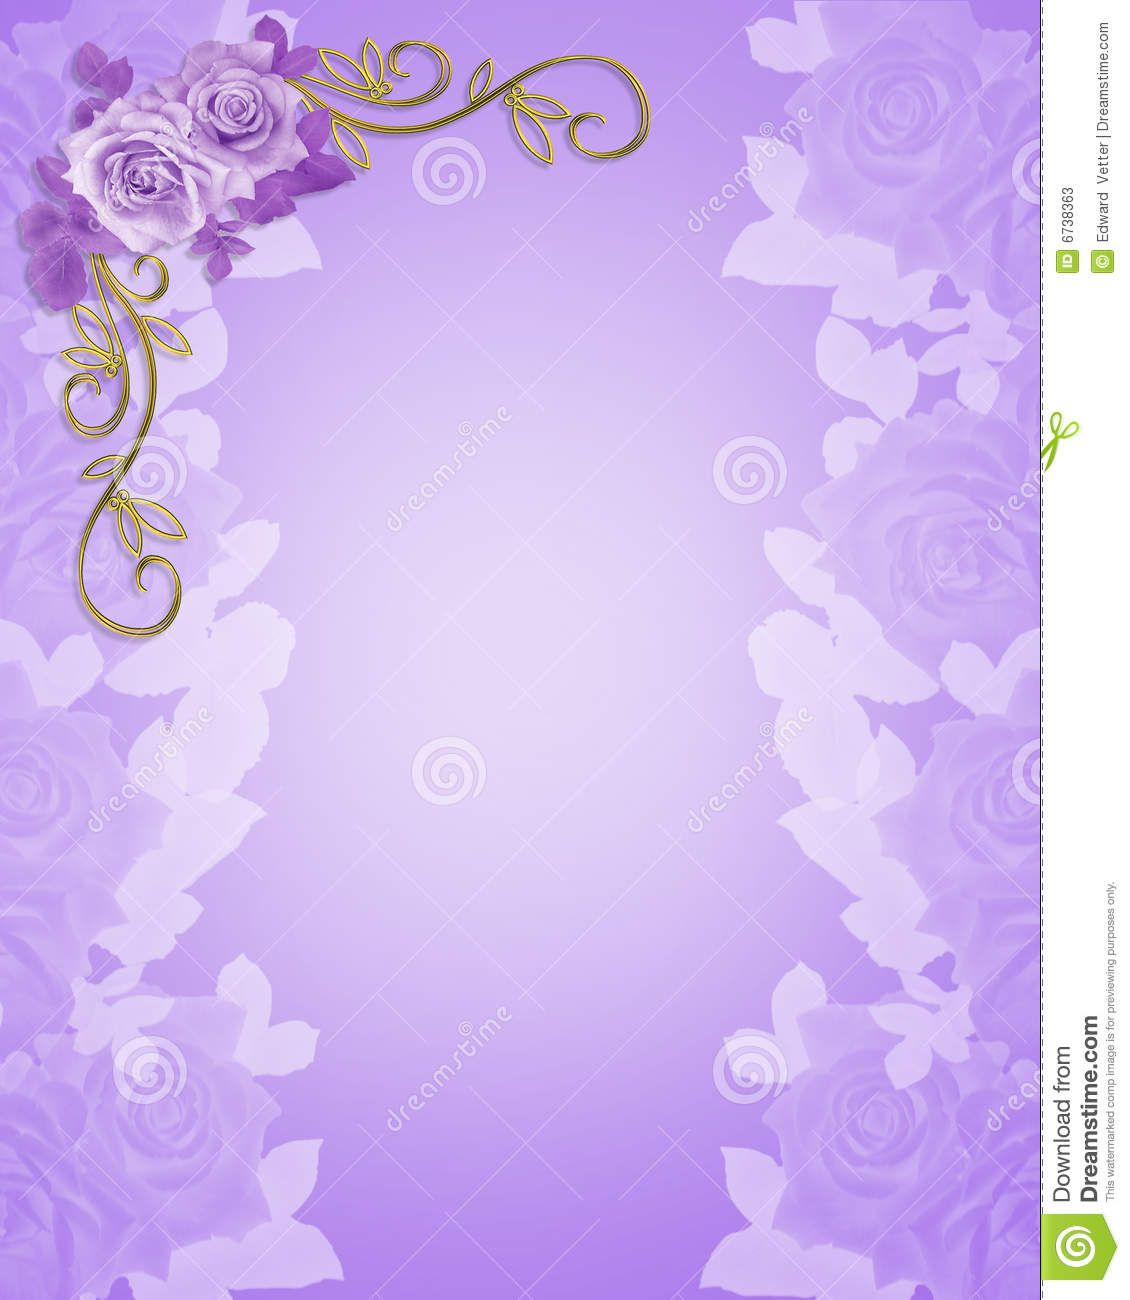 06a65c6c4ec8258688af81c87d5128e2 lavender background wedding wedding invitation border wedding,Lavender Wedding Invitation Templates